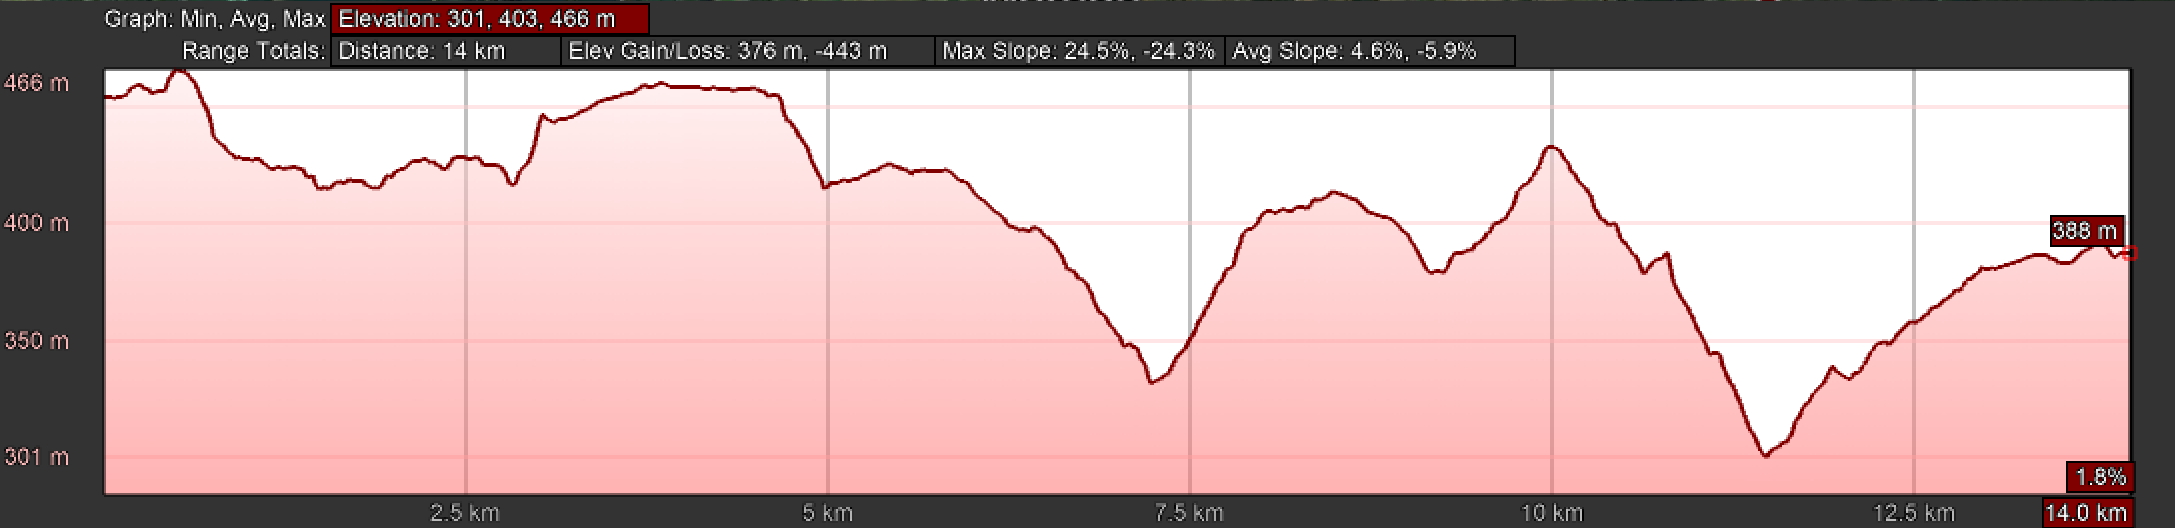 Elevation Profile, Melide to Arzúa